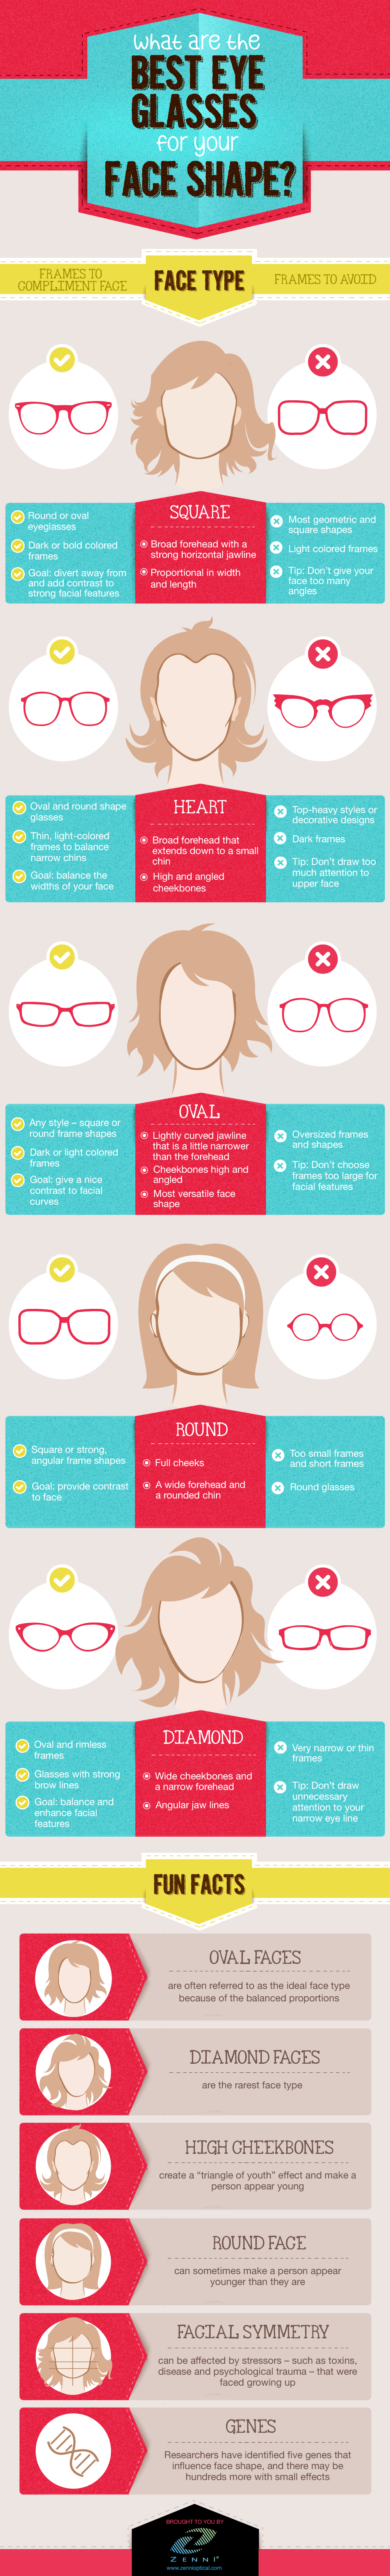 Glasses Frame Guide Face Shape : Infographic: The Best Eye Glasses For Your Face Shape ...